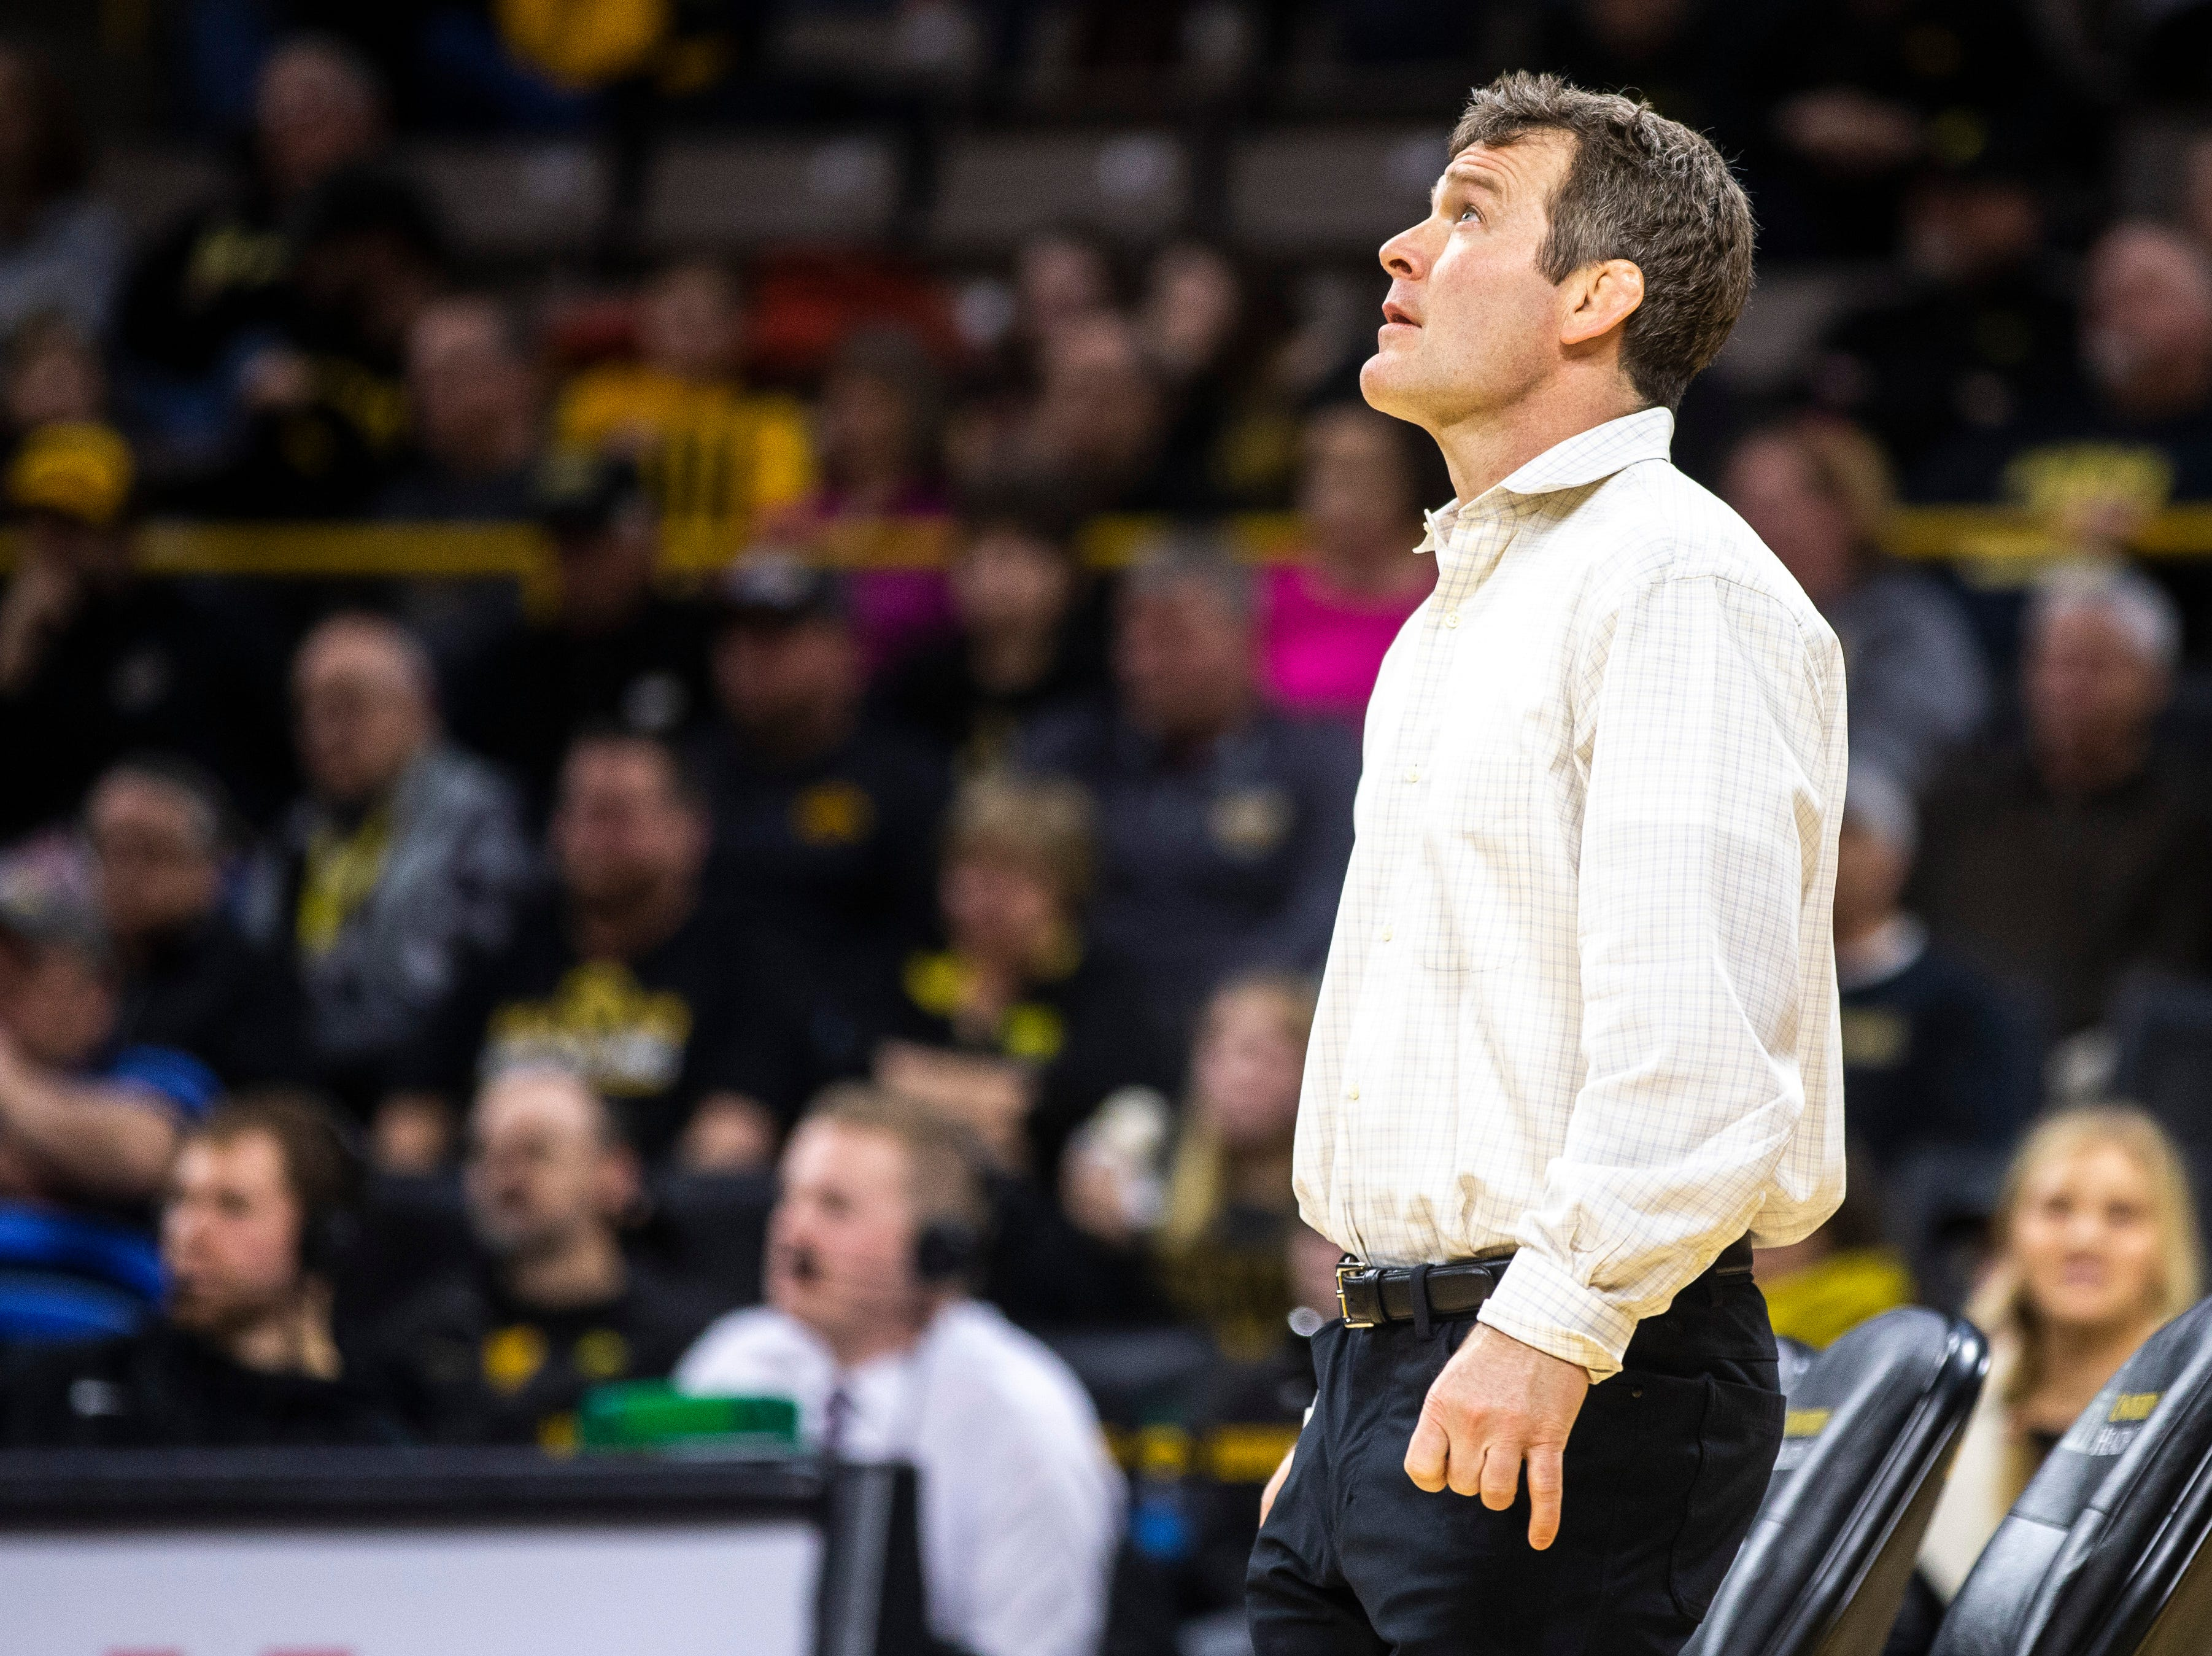 Iowa head coach Tom Brands looks up at the scoreboard during a NCAA Big Ten Conference wrestling dual on Friday, Feb. 8, 2019 at Carver-Hawkeye Arena in Iowa City, Iowa.